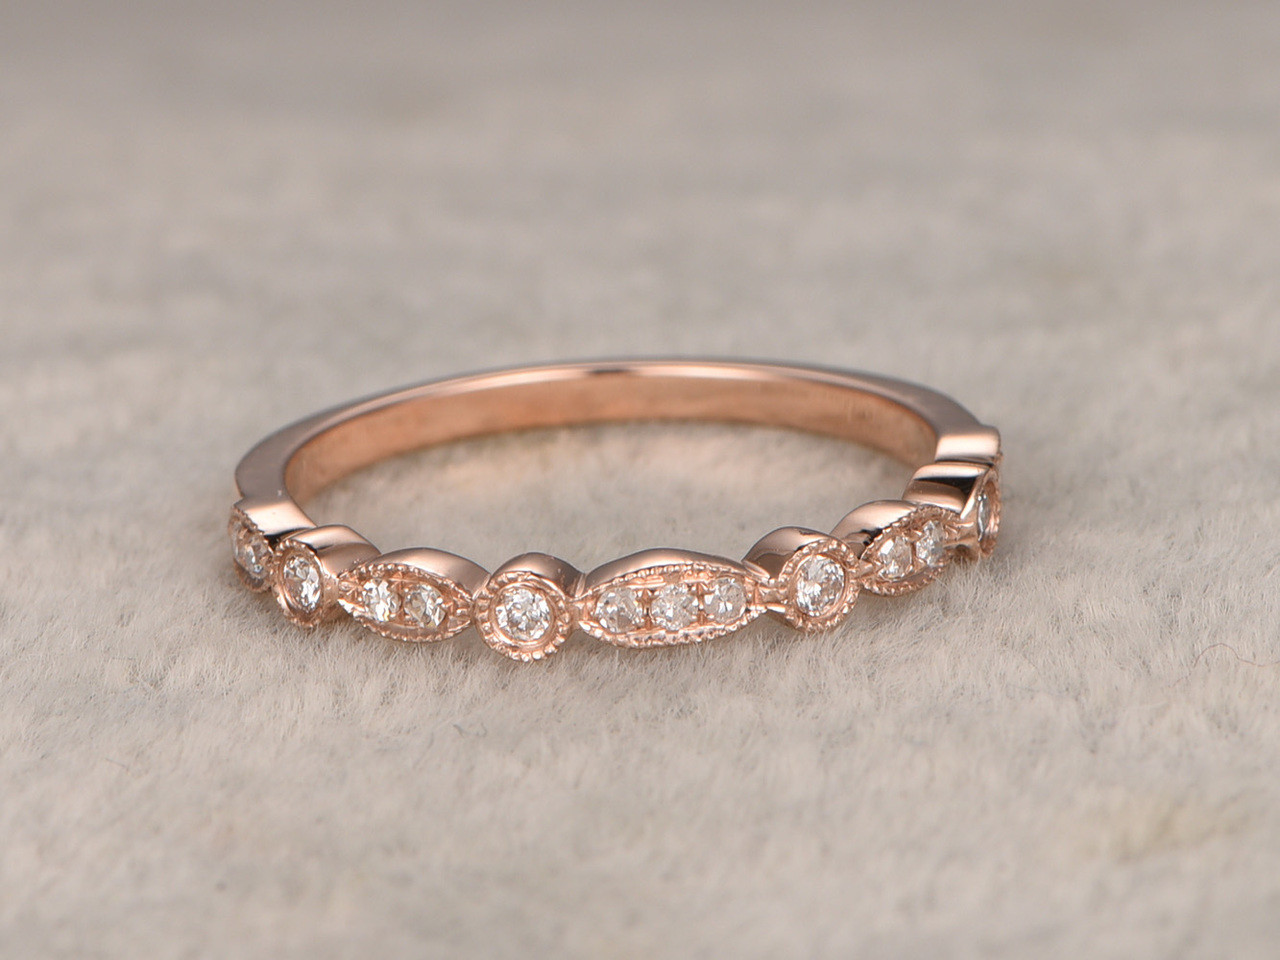 Diamond Wedding Rings For Her 14k Rose Gold Antique Center 3 Stones Art  Deco Half Eternity